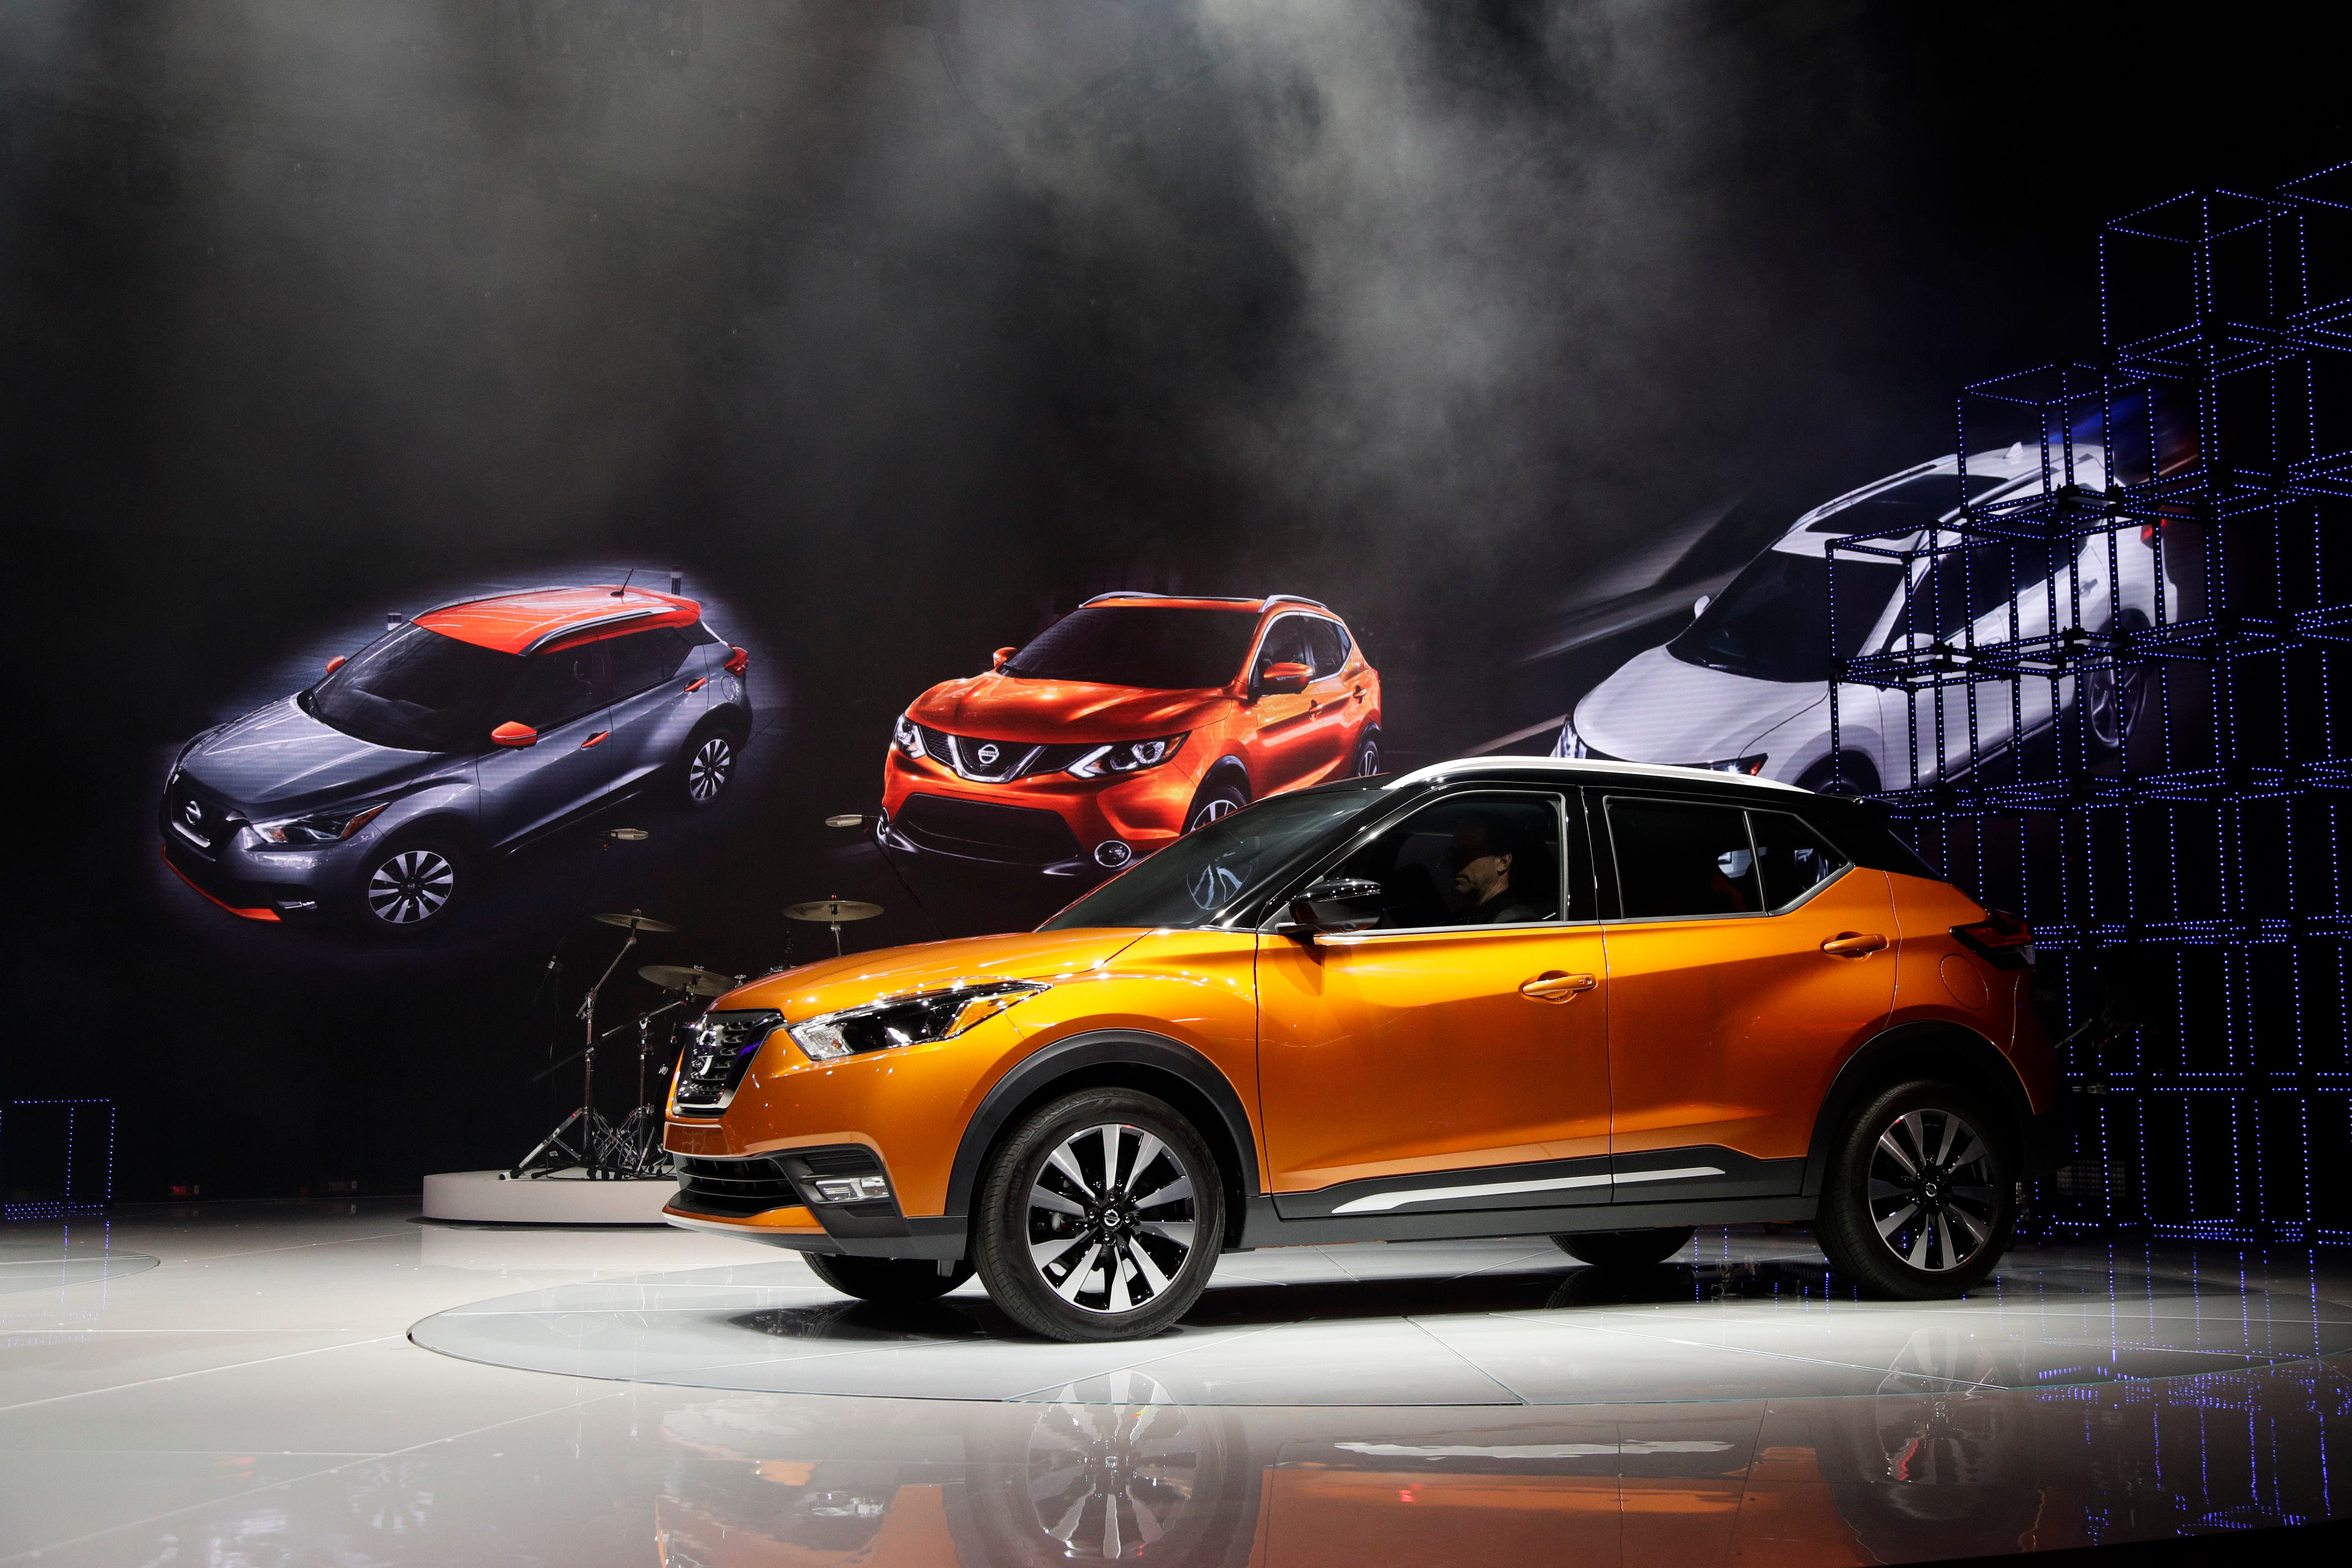 2018 Nissan Kicks: The frog-eyed Juke is no more as